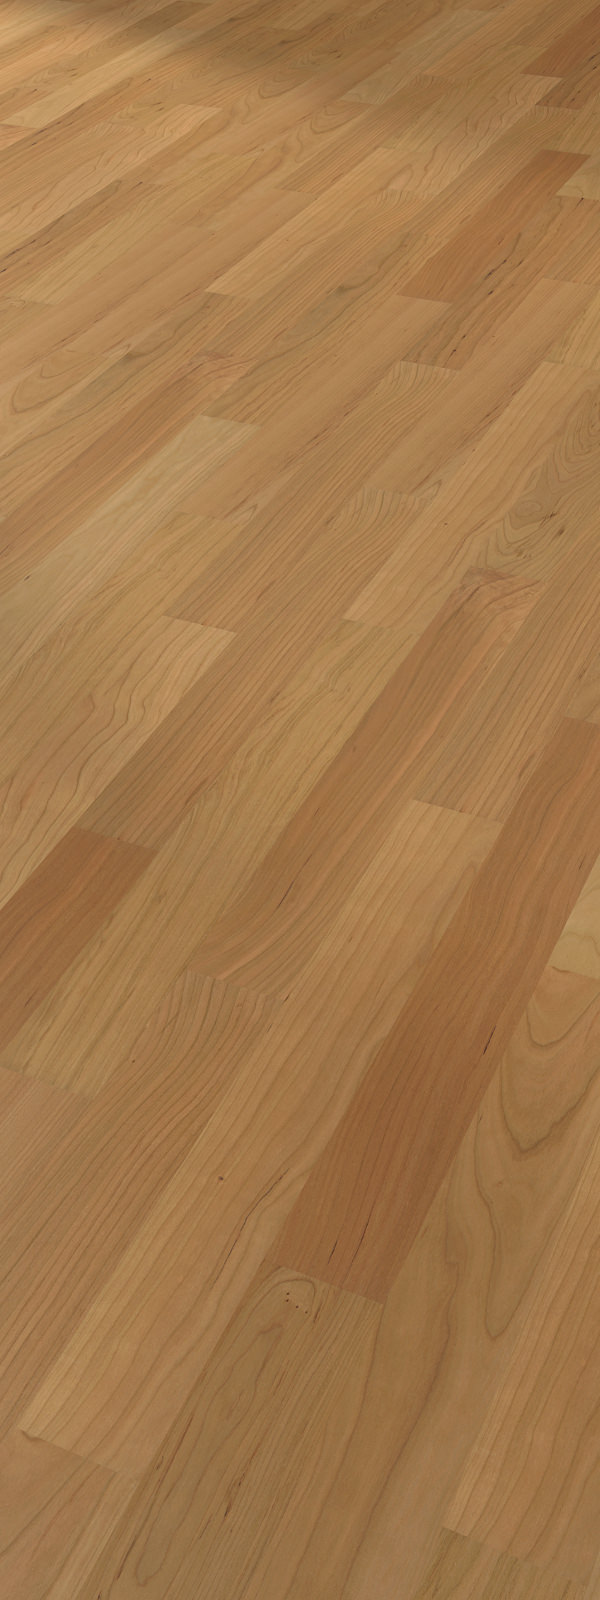 Board PREMIUM FLOOR HERRINGBONE Black Cherry